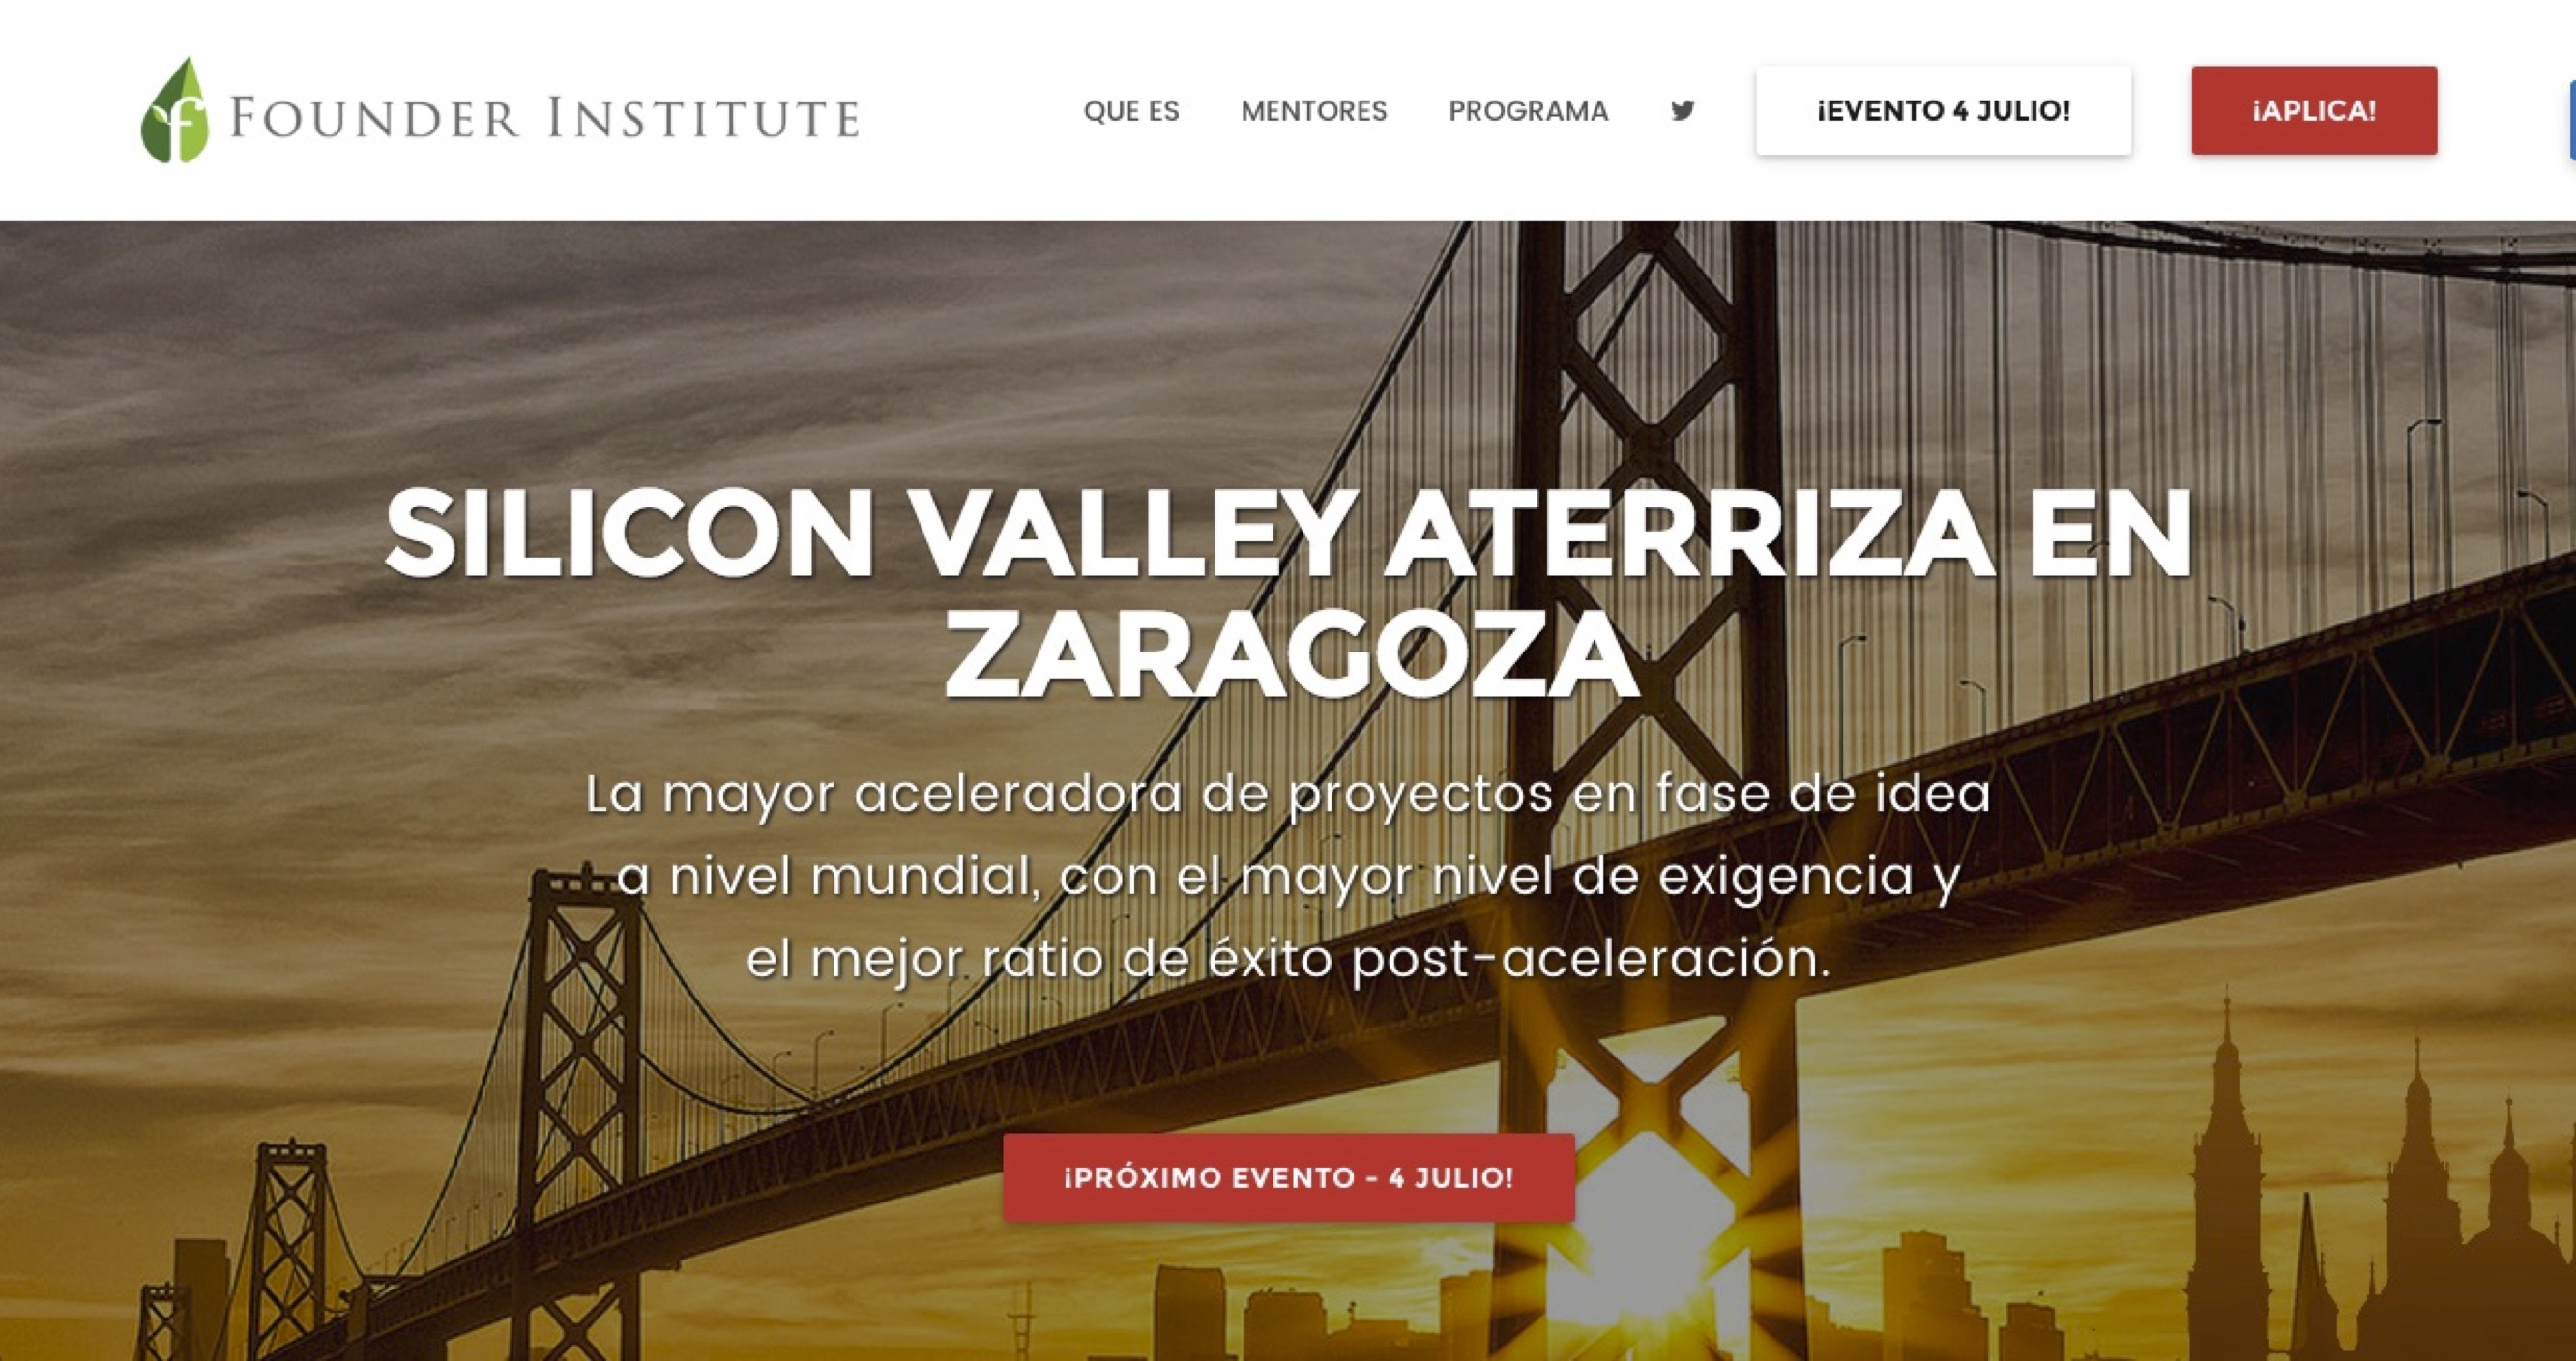 Founder Institute, de Silicon Valley a Zaragoza